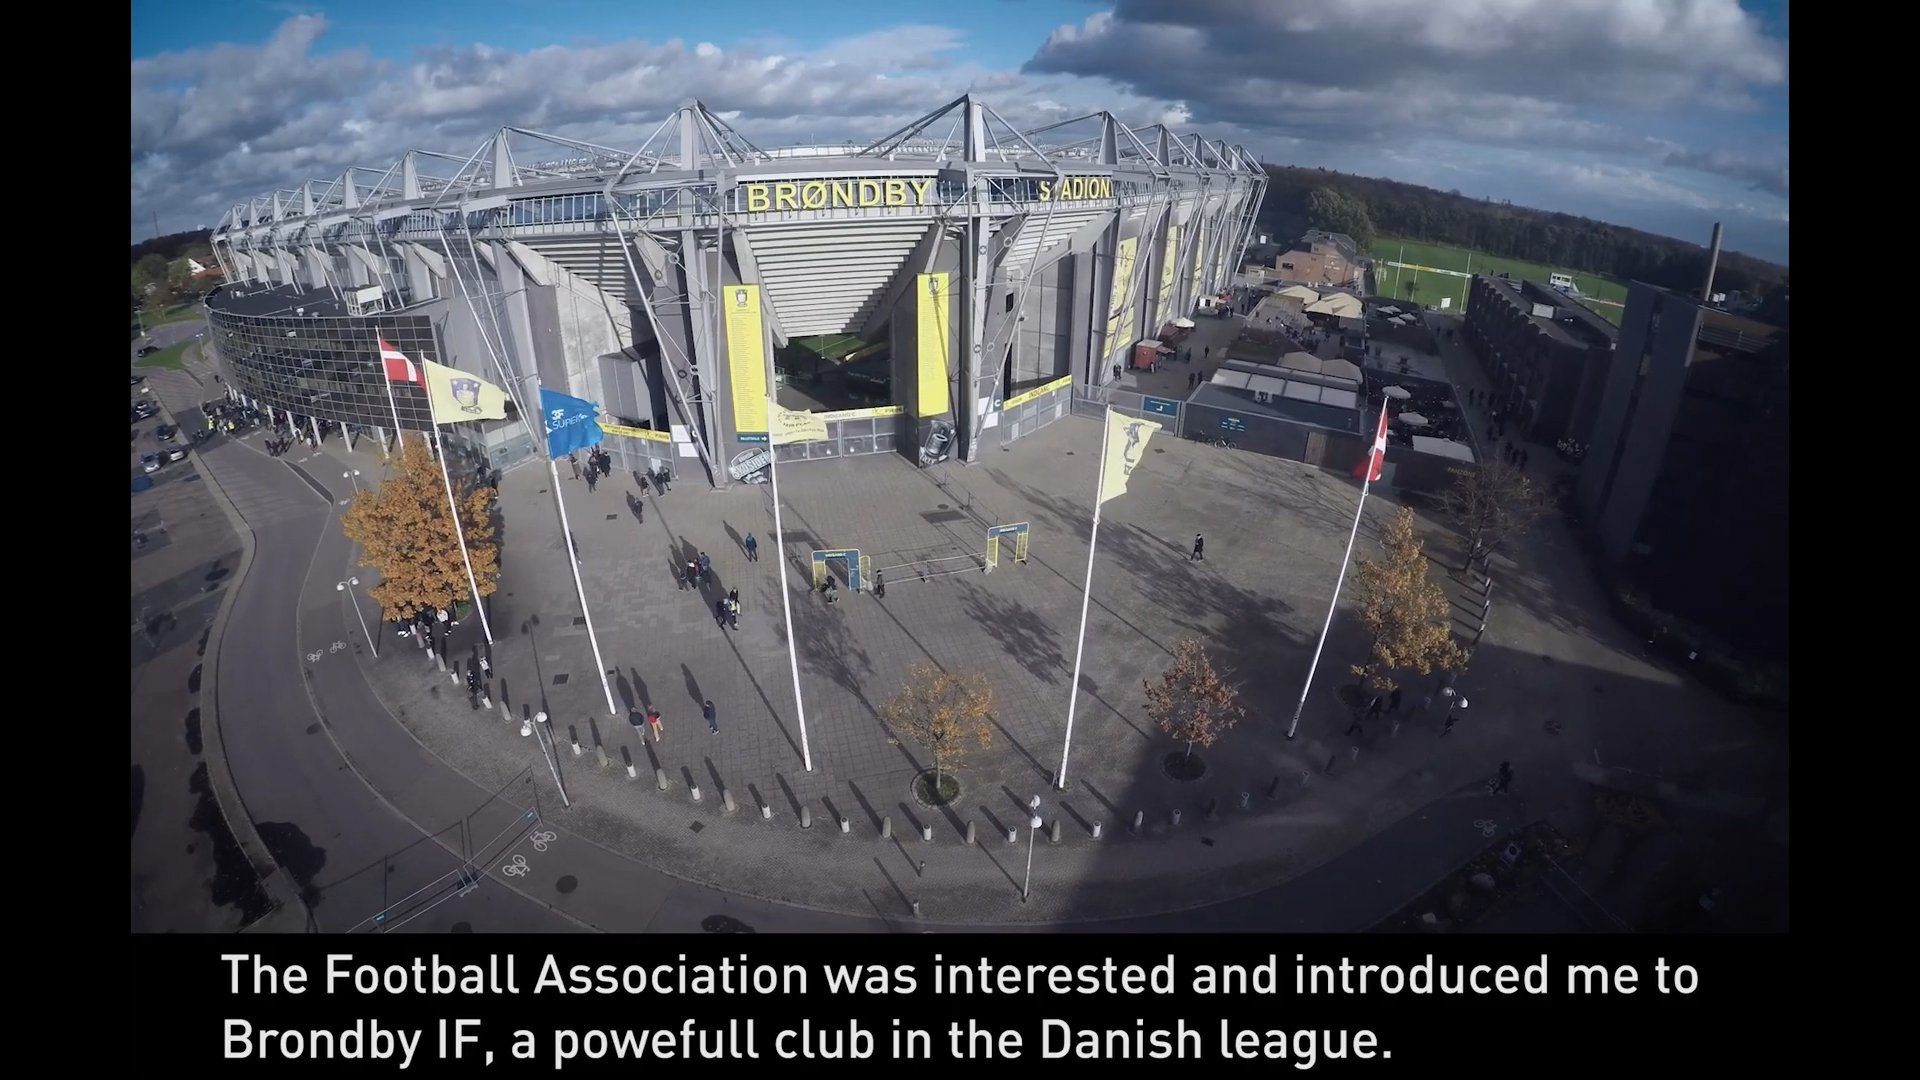 Panasonic's facial recognition solution at the football stadium